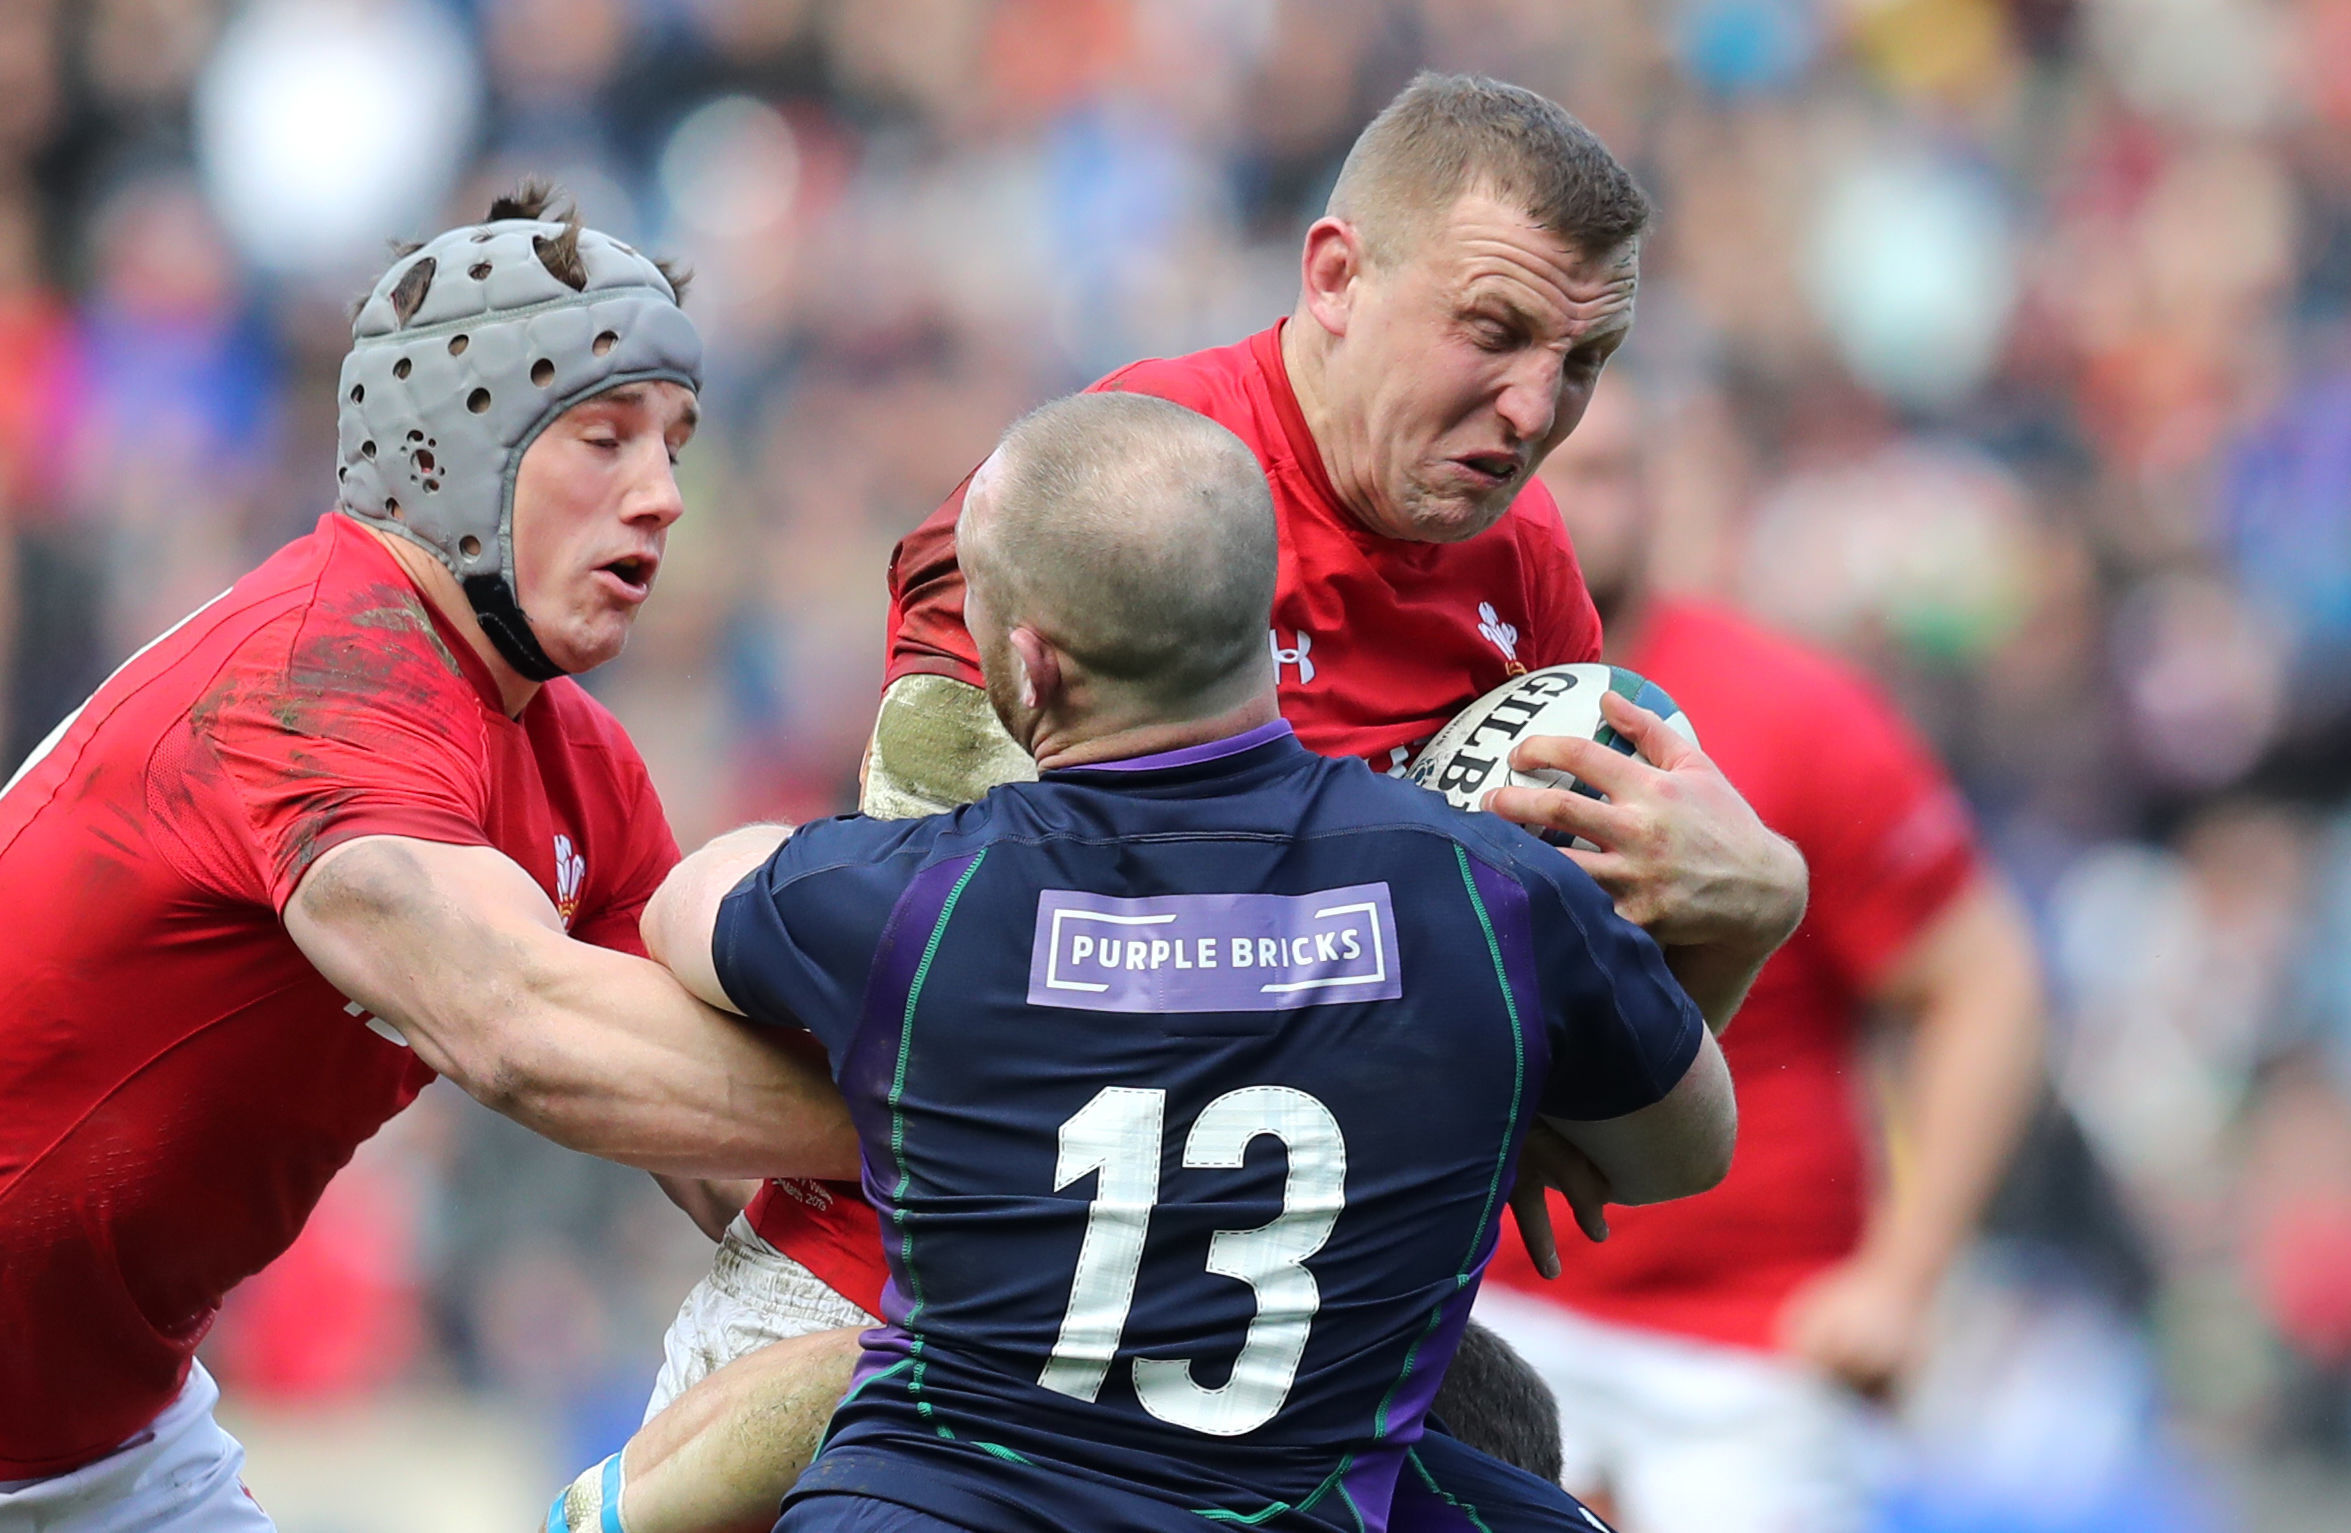 BRUISING BATTLE: Centre Hadleigh Parkes was left bloodied after leading the charge for Wales in Scotland